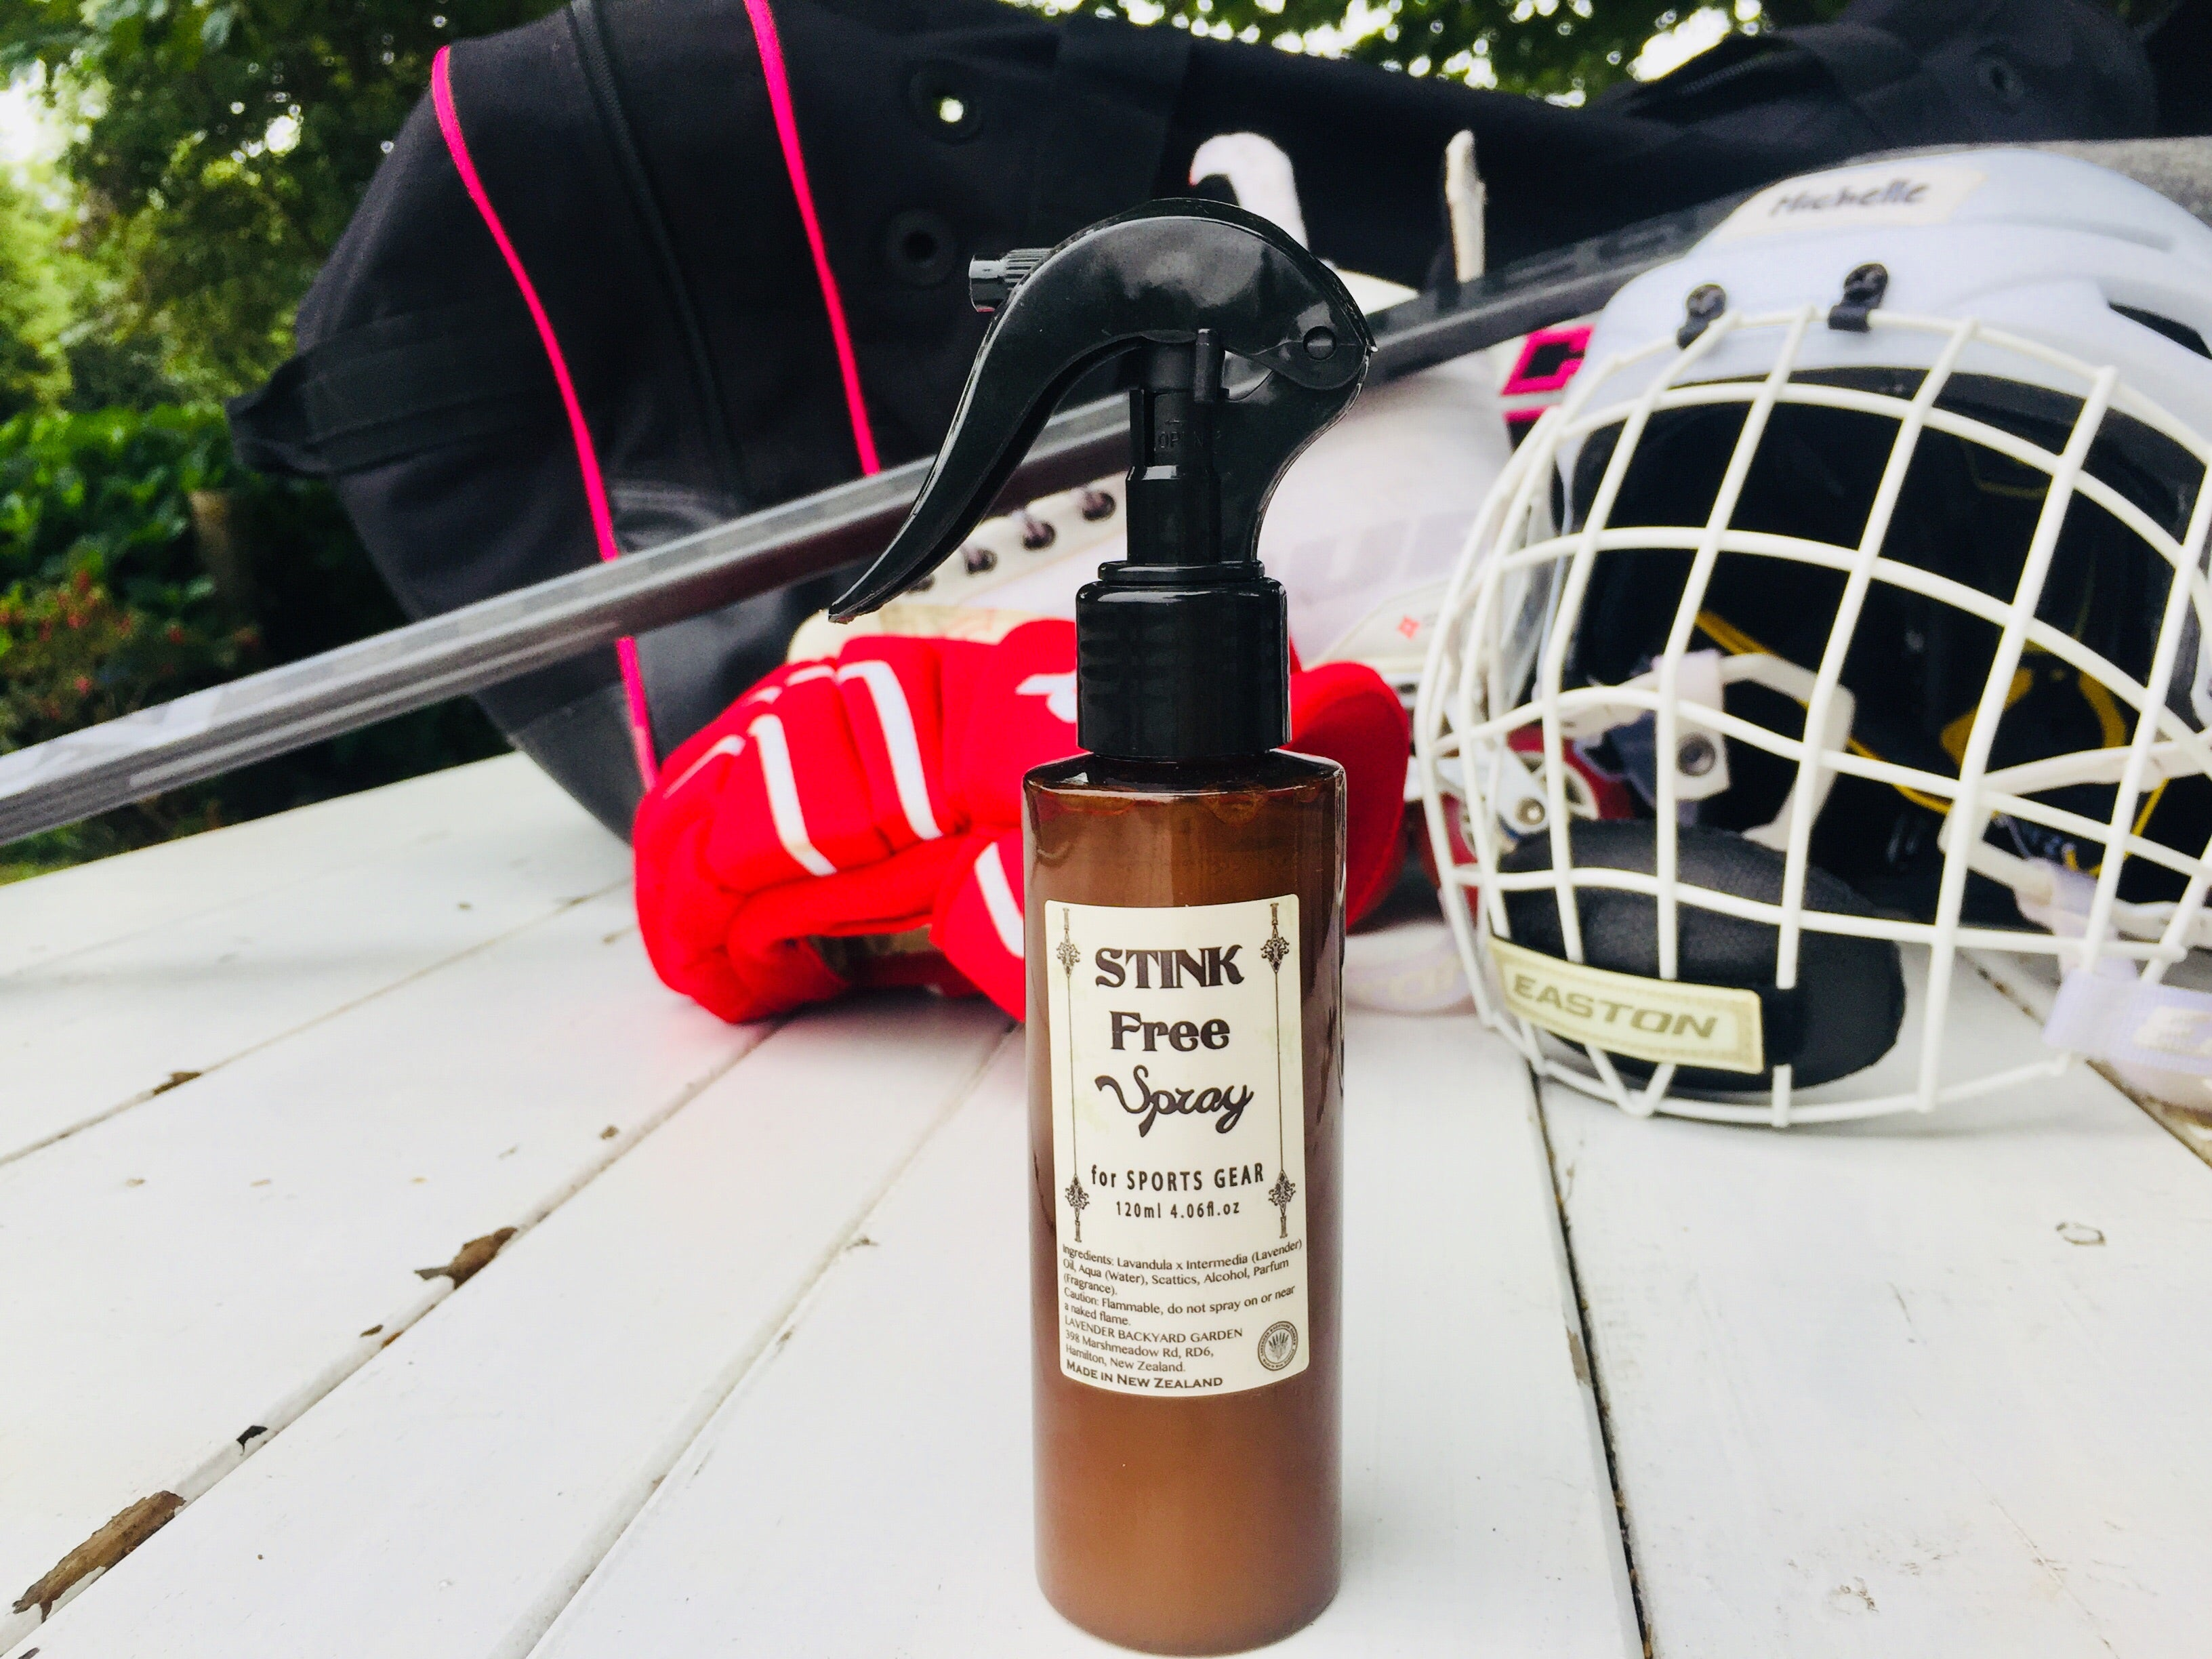 NZ Lavender Products: Stink Free Spray for Sports Gear